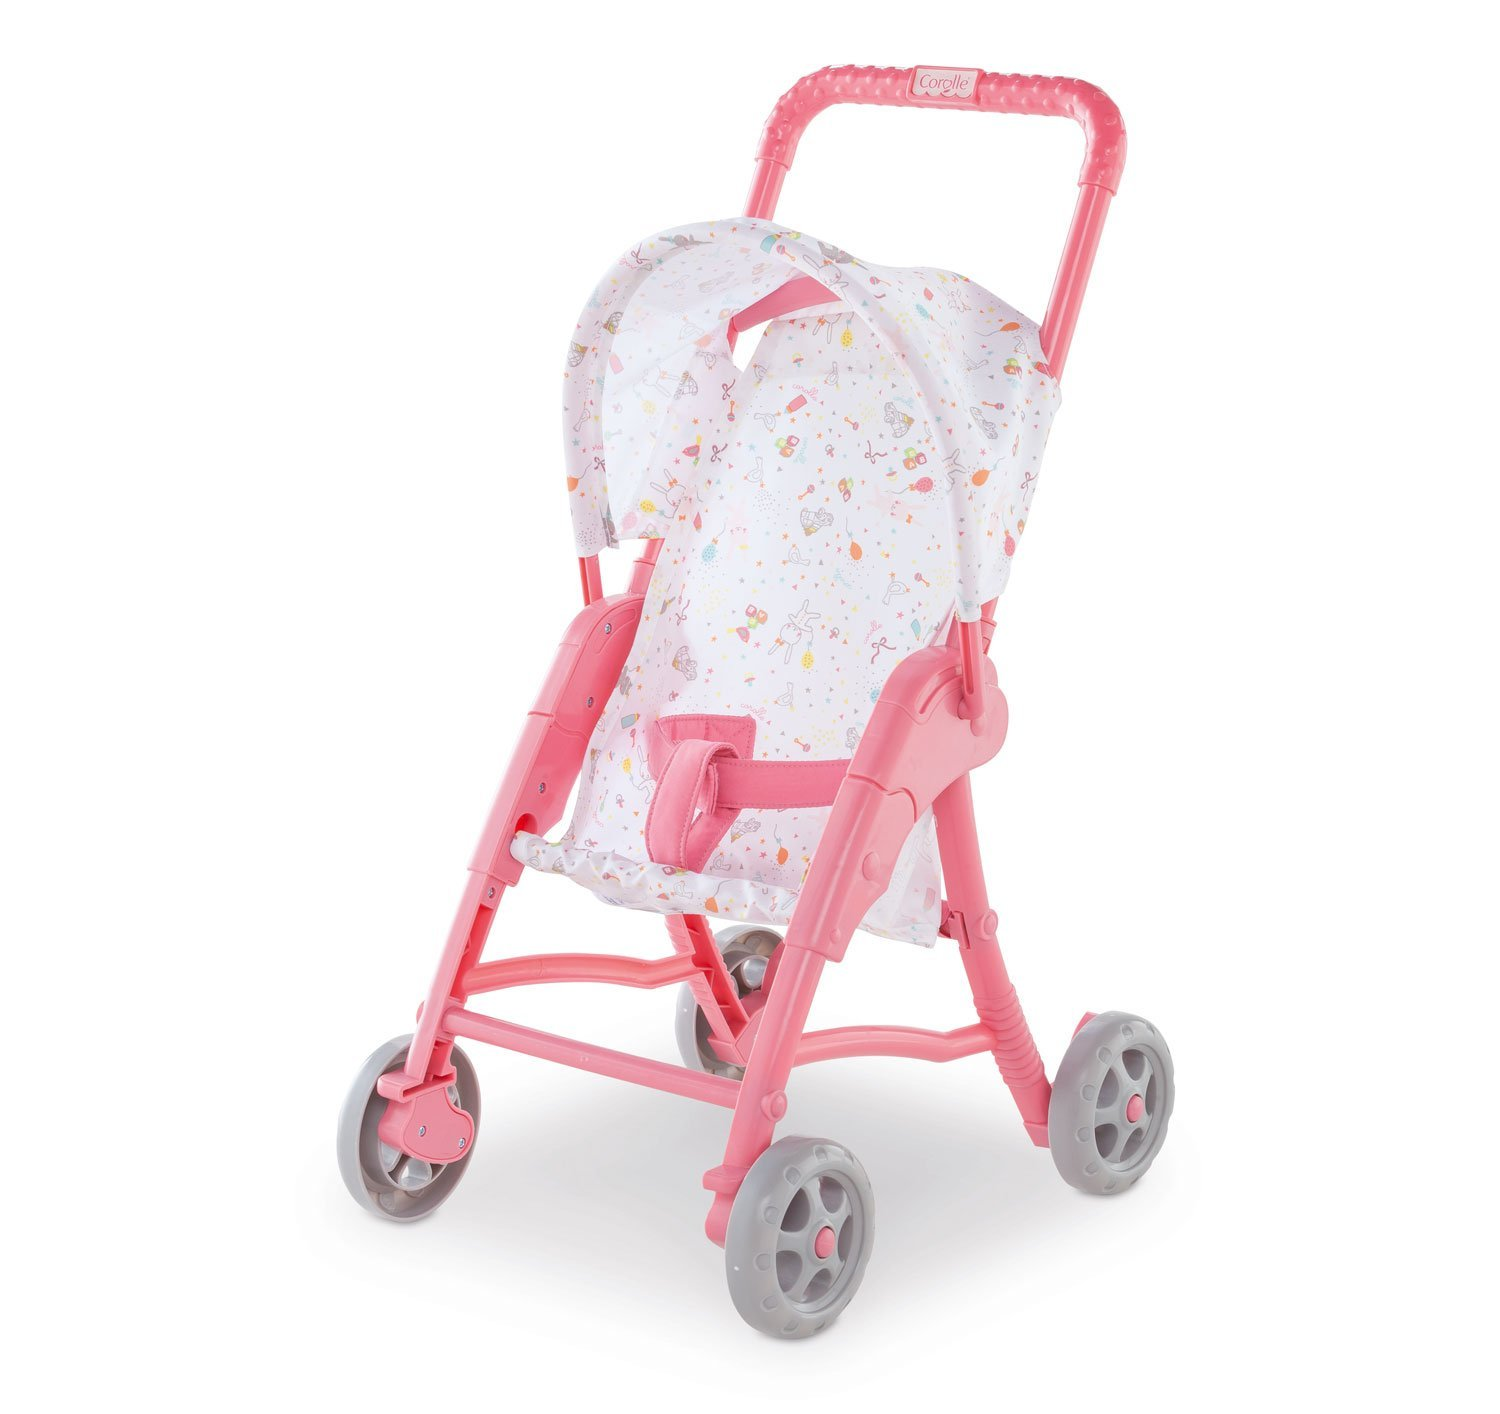 Mon Premier Stroller, Everything little ones need to take care of their baby doll By Corolle by